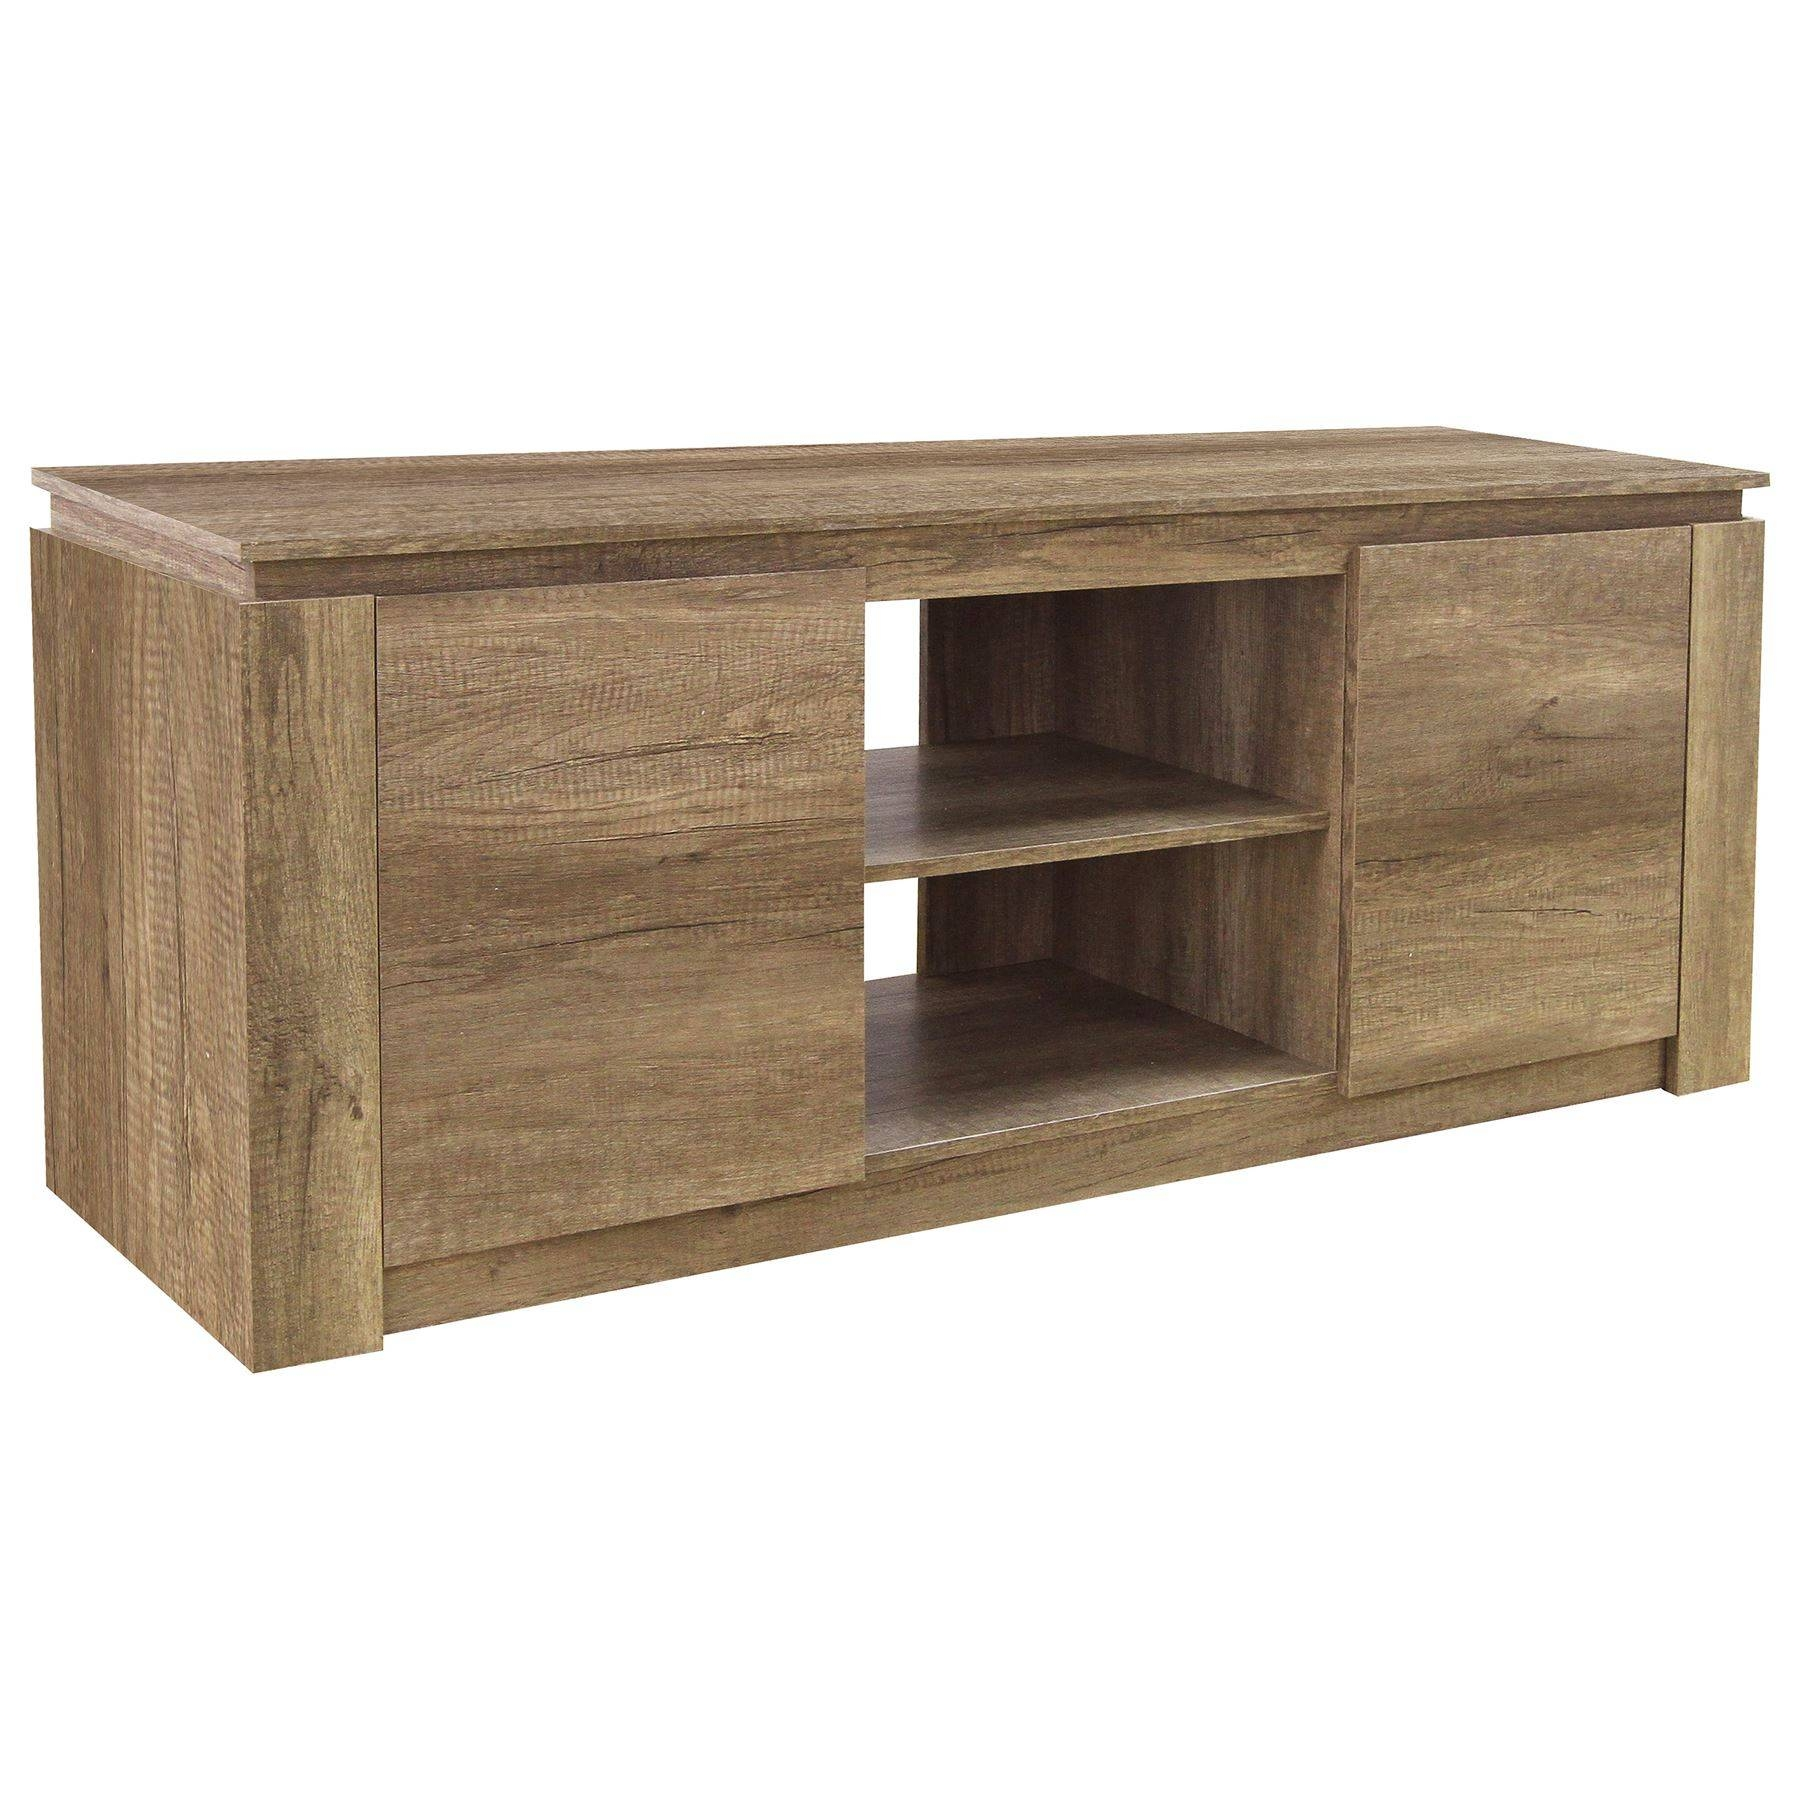 Oak Bookshelf Bookside Tv Unit Stand Coffee Lamp Table Sideboard Regarding Sideboards And Tv Stands (View 15 of 15)